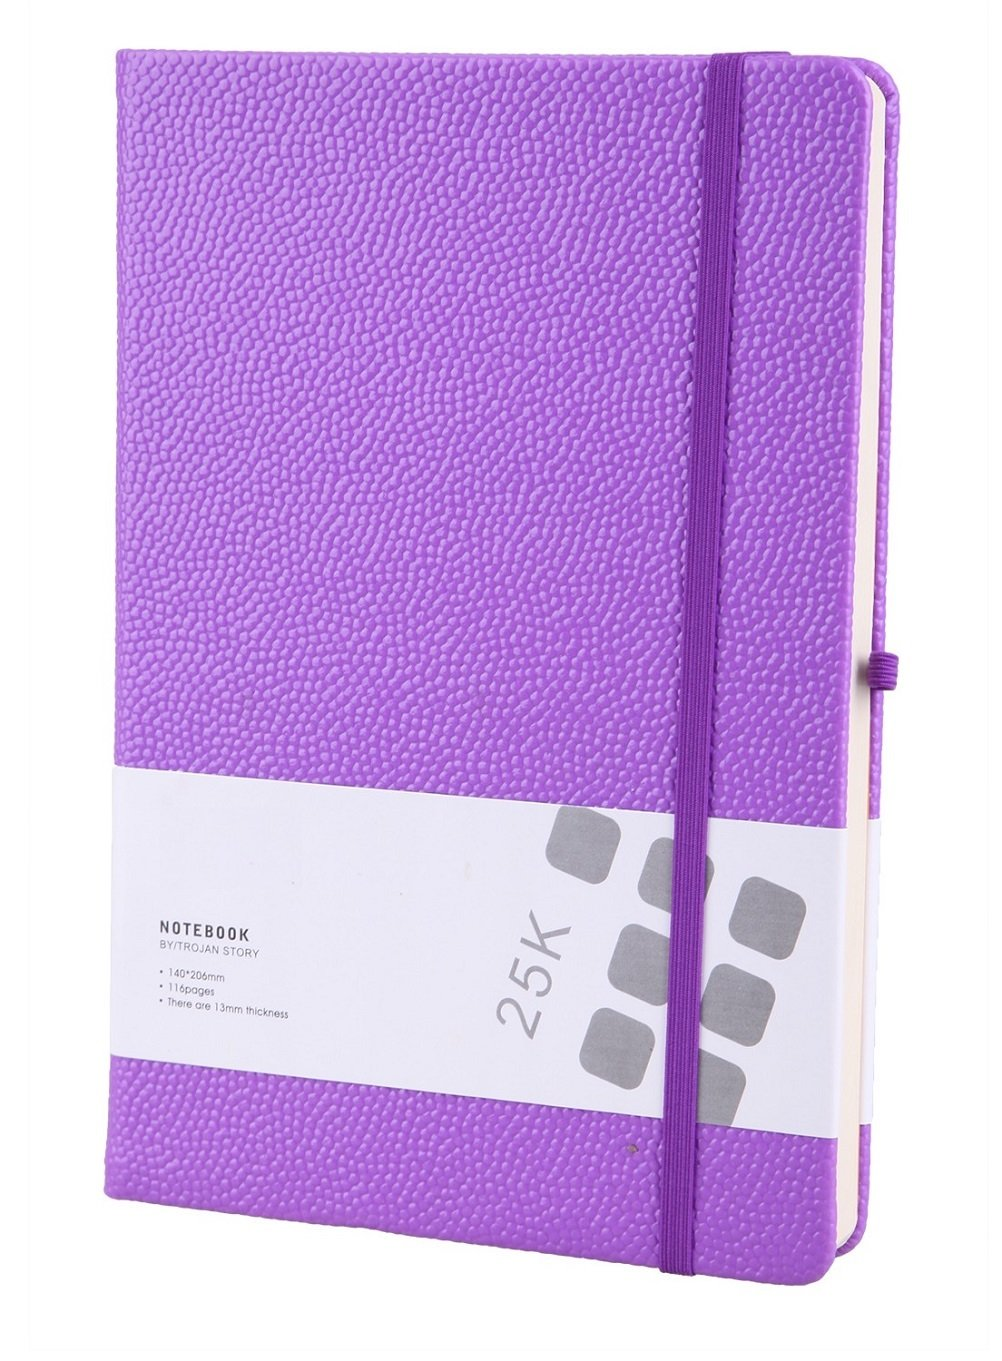 Cute Hardcover Journal Notebook Medium PU Leather Ruled Diary to Write in for Girl Women Men Gift, Elastic Closure, Pen Holder, Page Dividers, 5.6 x 8.3 Inch Back to School Supplies (Purple)